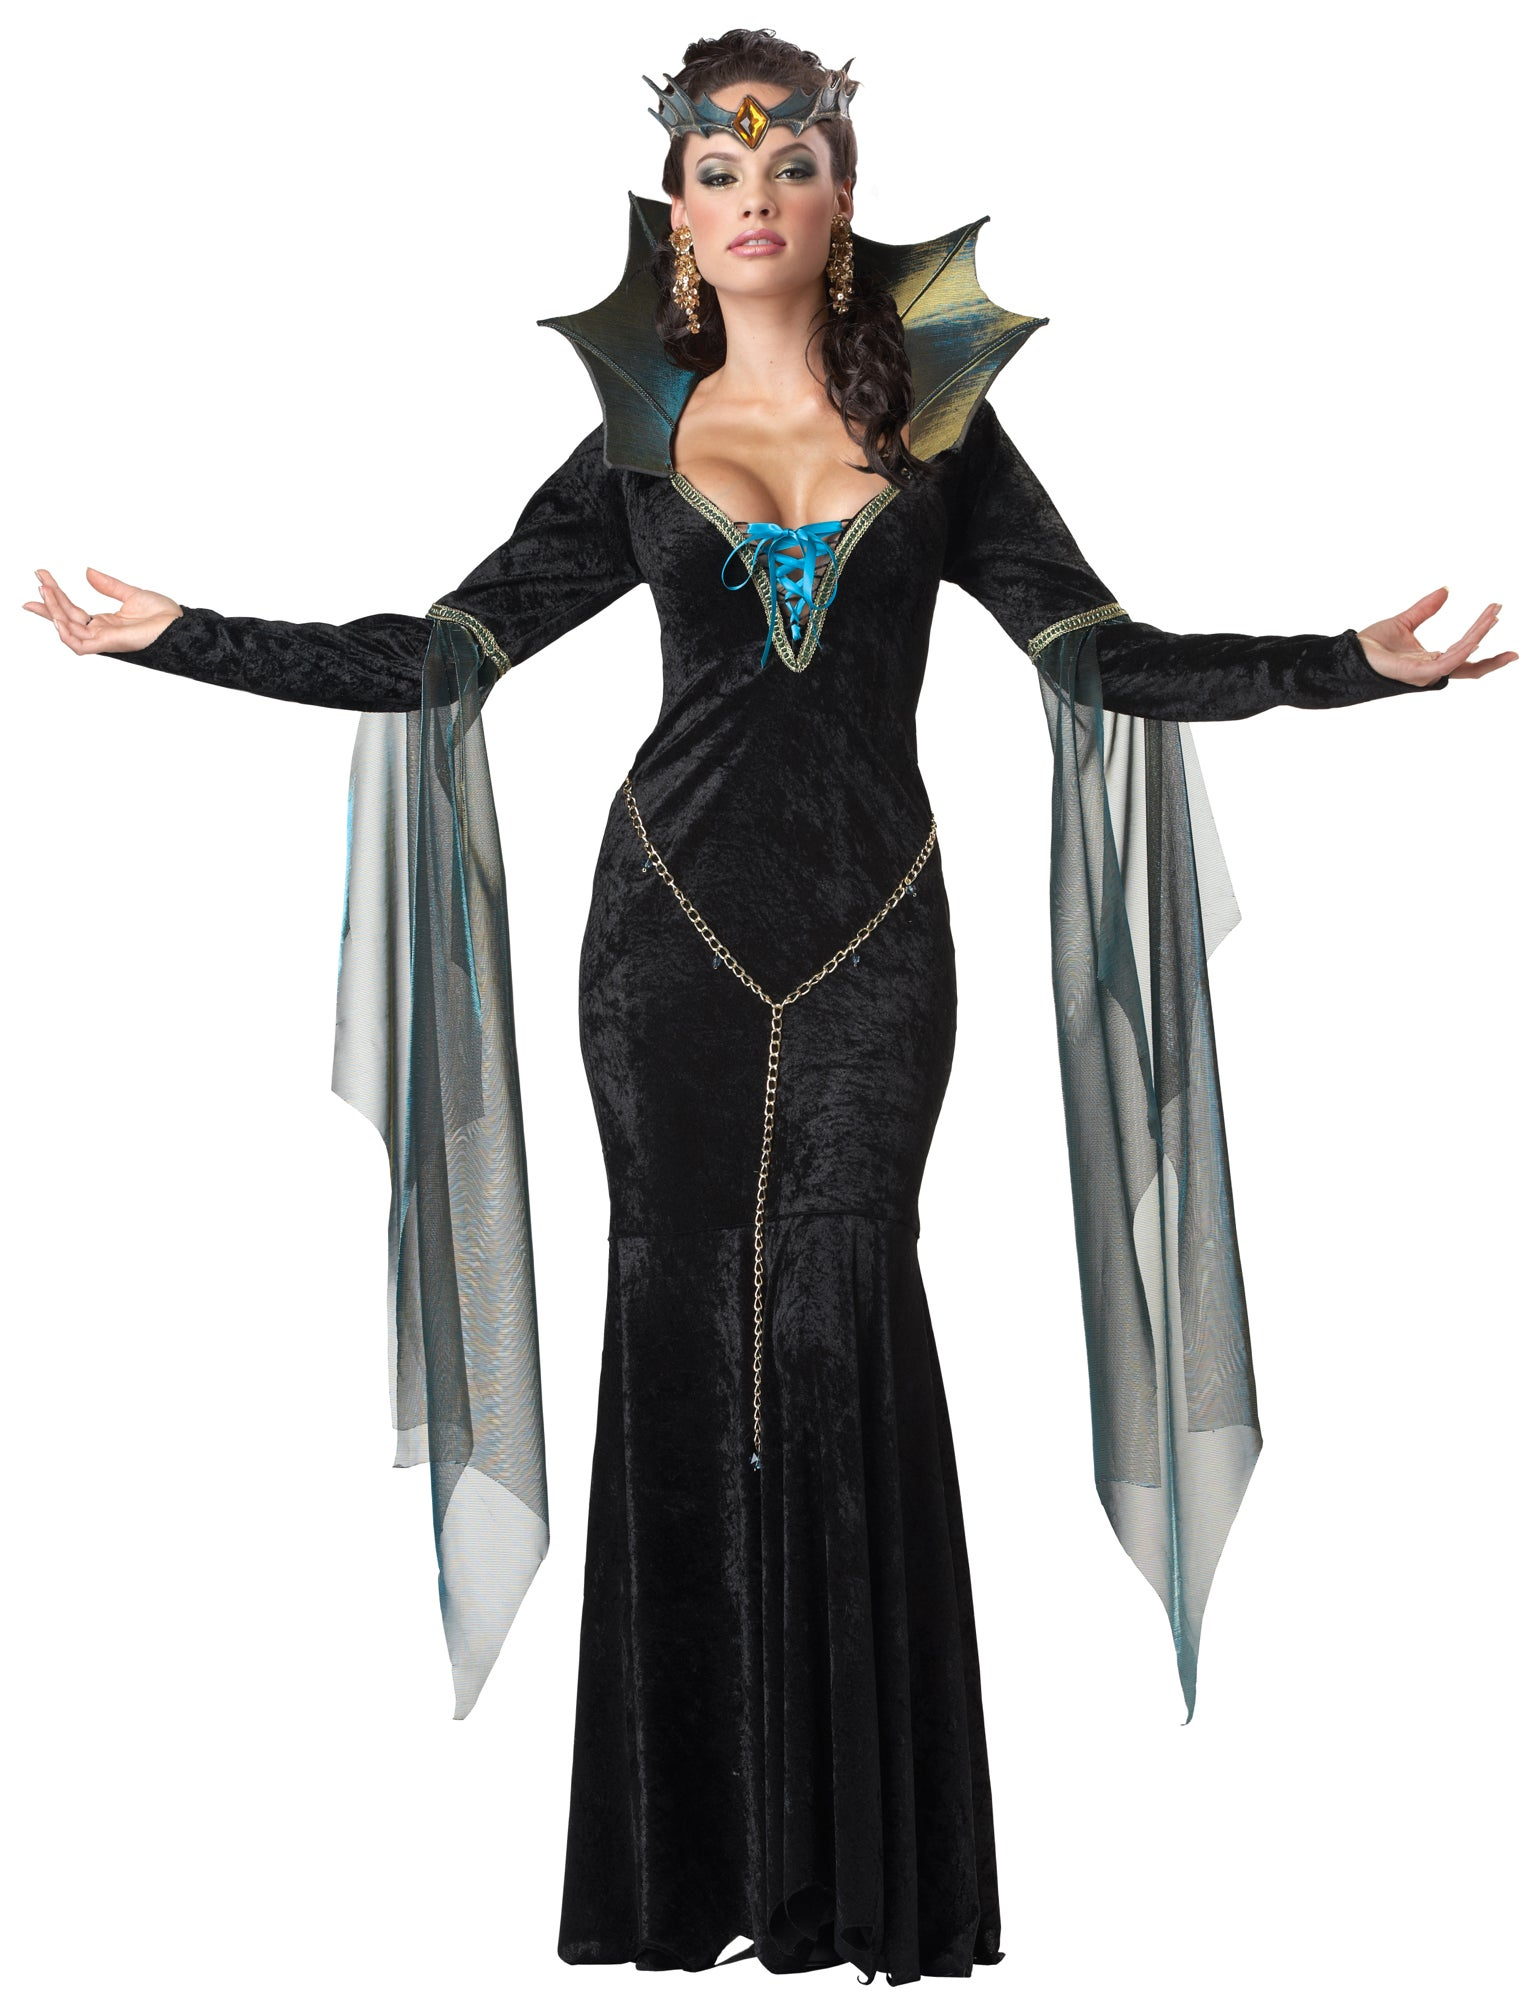 Hobbypos Evil Sorceress Wicked Witch Enchantress Fairytale Story Book Womens Costume